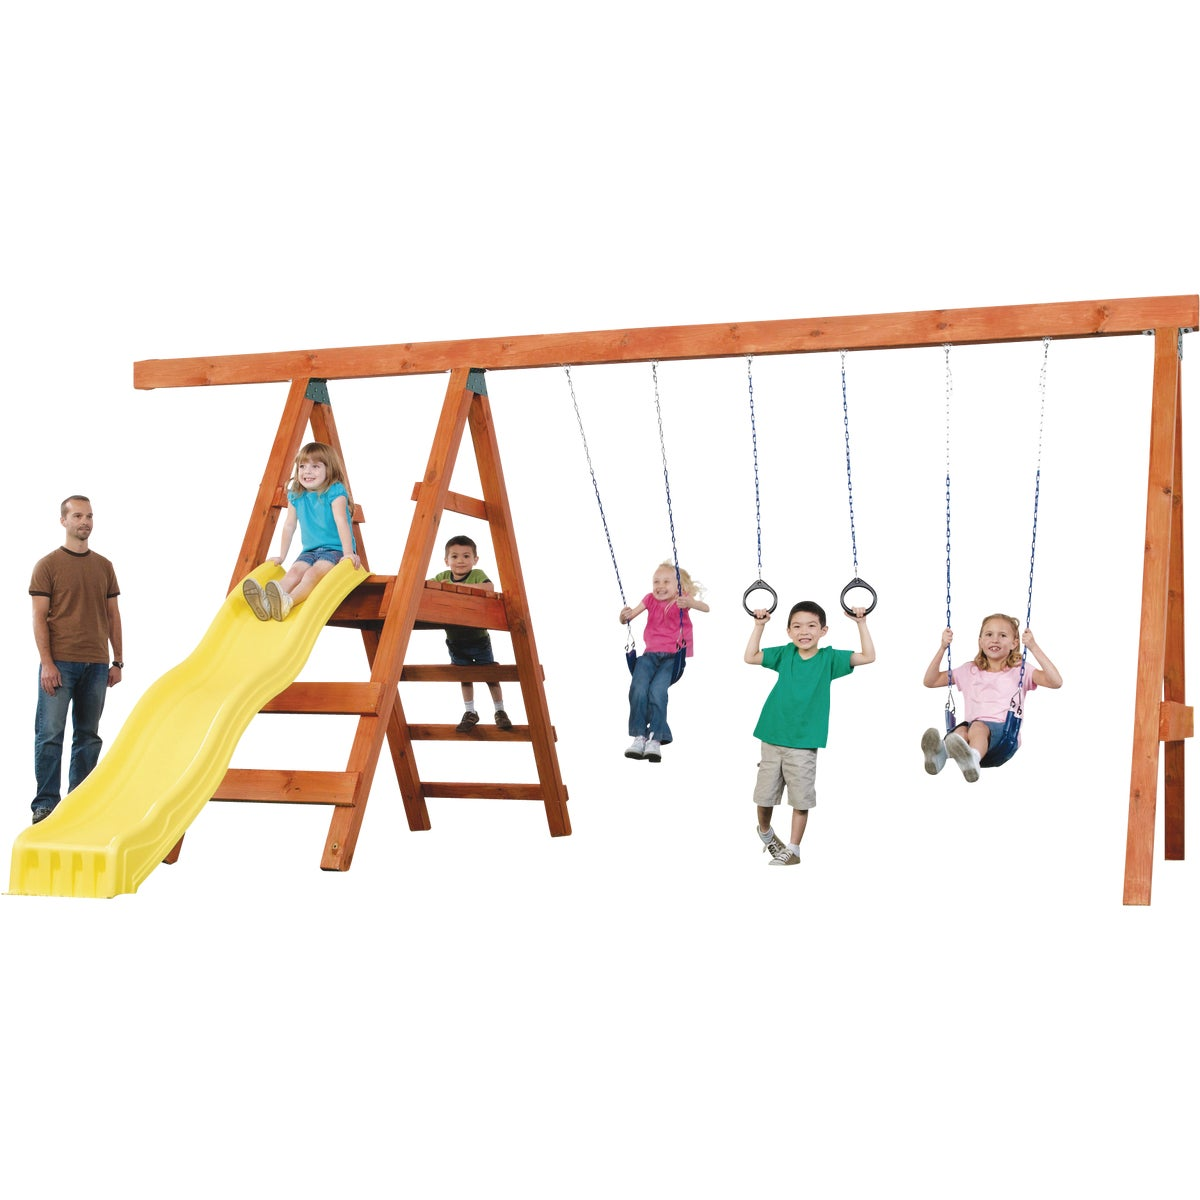 PIONEER SWING SET KIT - NE4433 by Swing N Slide Corp